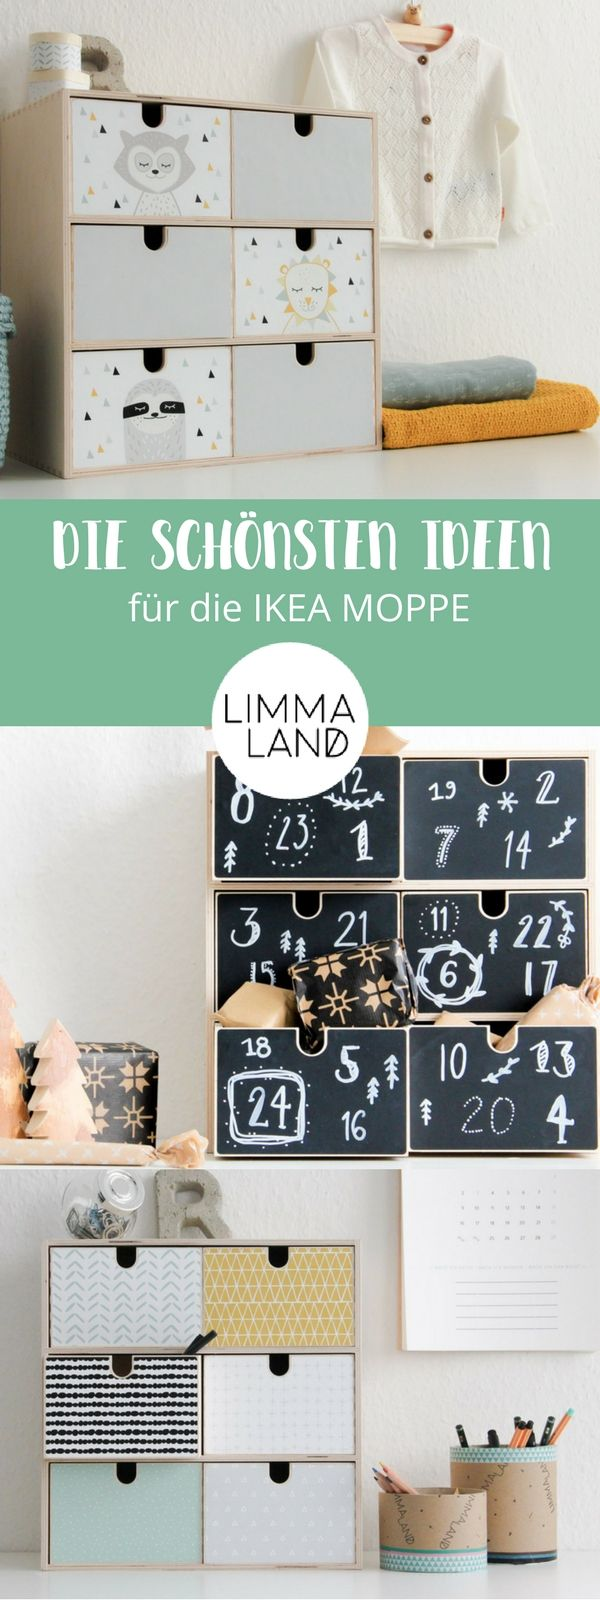 ikea mini kommode die besten ideen f r die moppe tafelfolie skandinavisch und stylisch. Black Bedroom Furniture Sets. Home Design Ideas